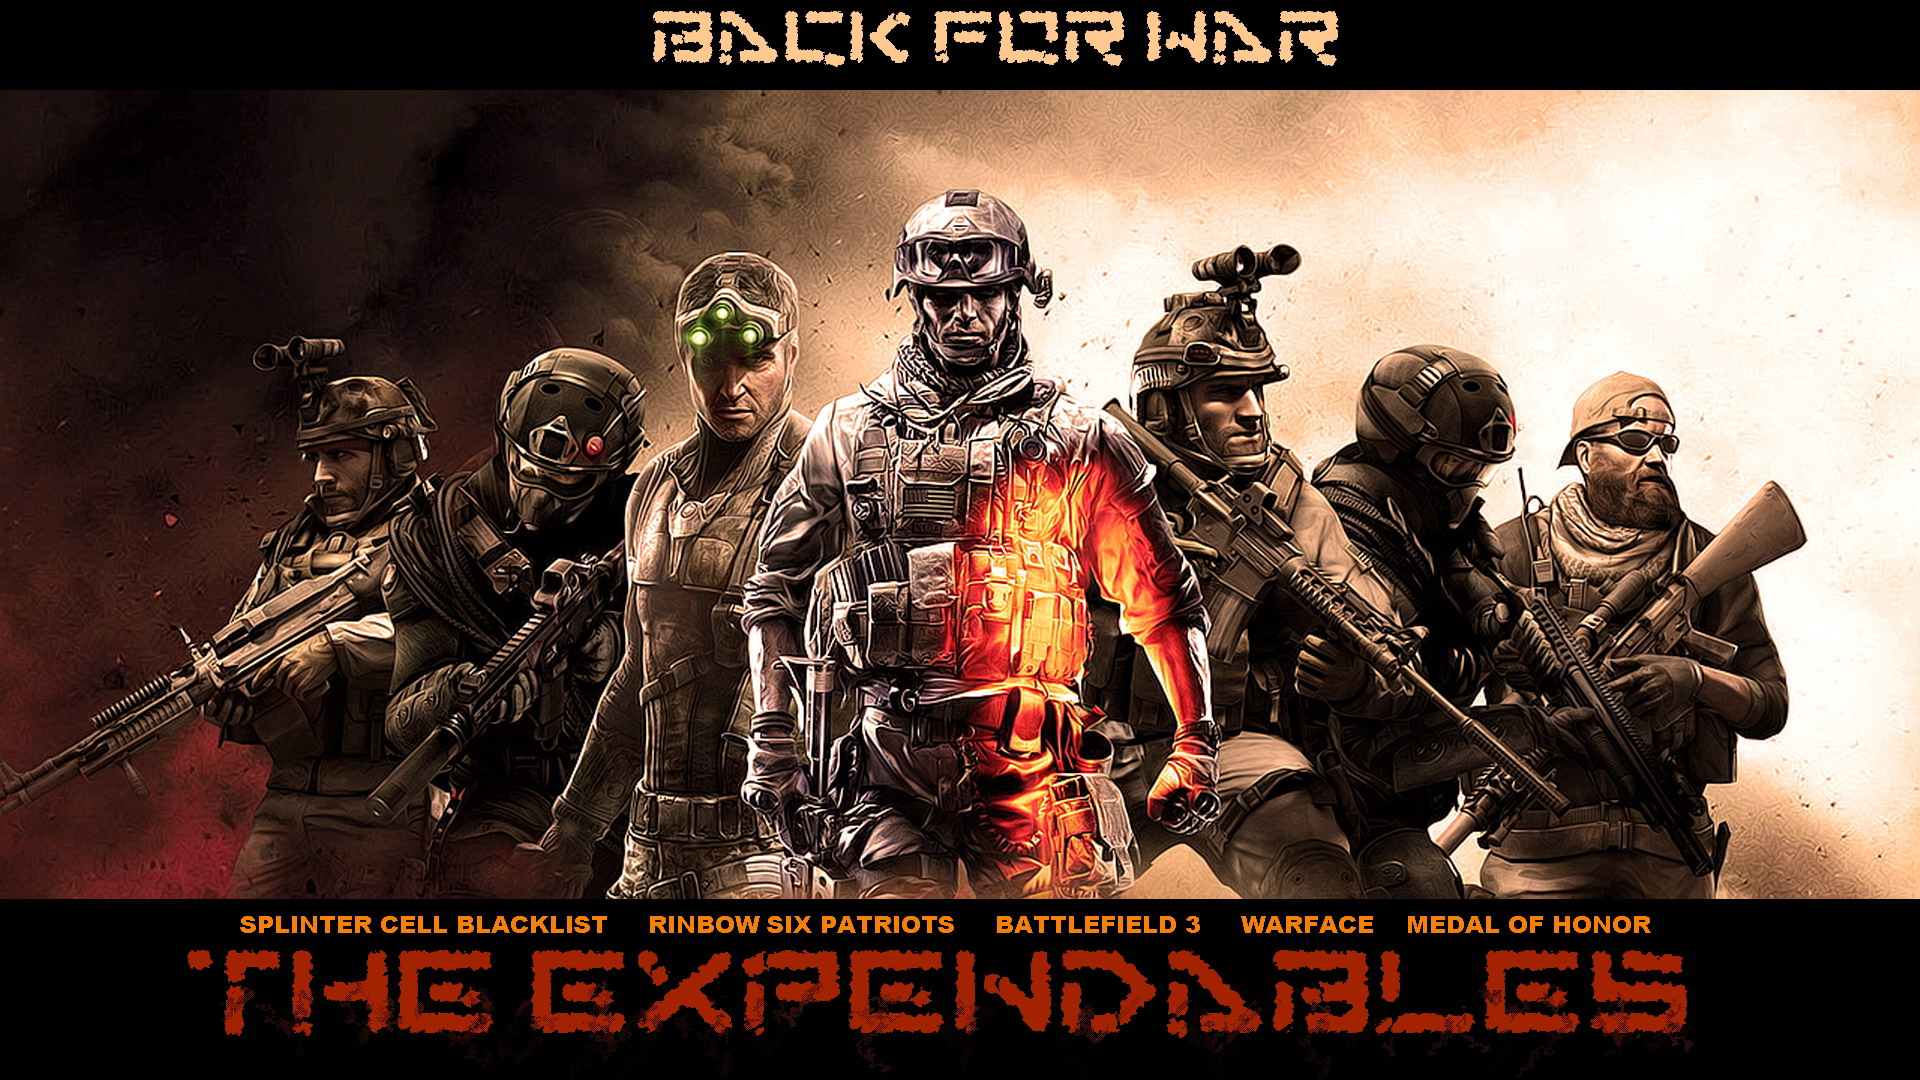 Knicks Iphone Wallpaper Awesome Hd Expendables Video Game Hd Wallpapers